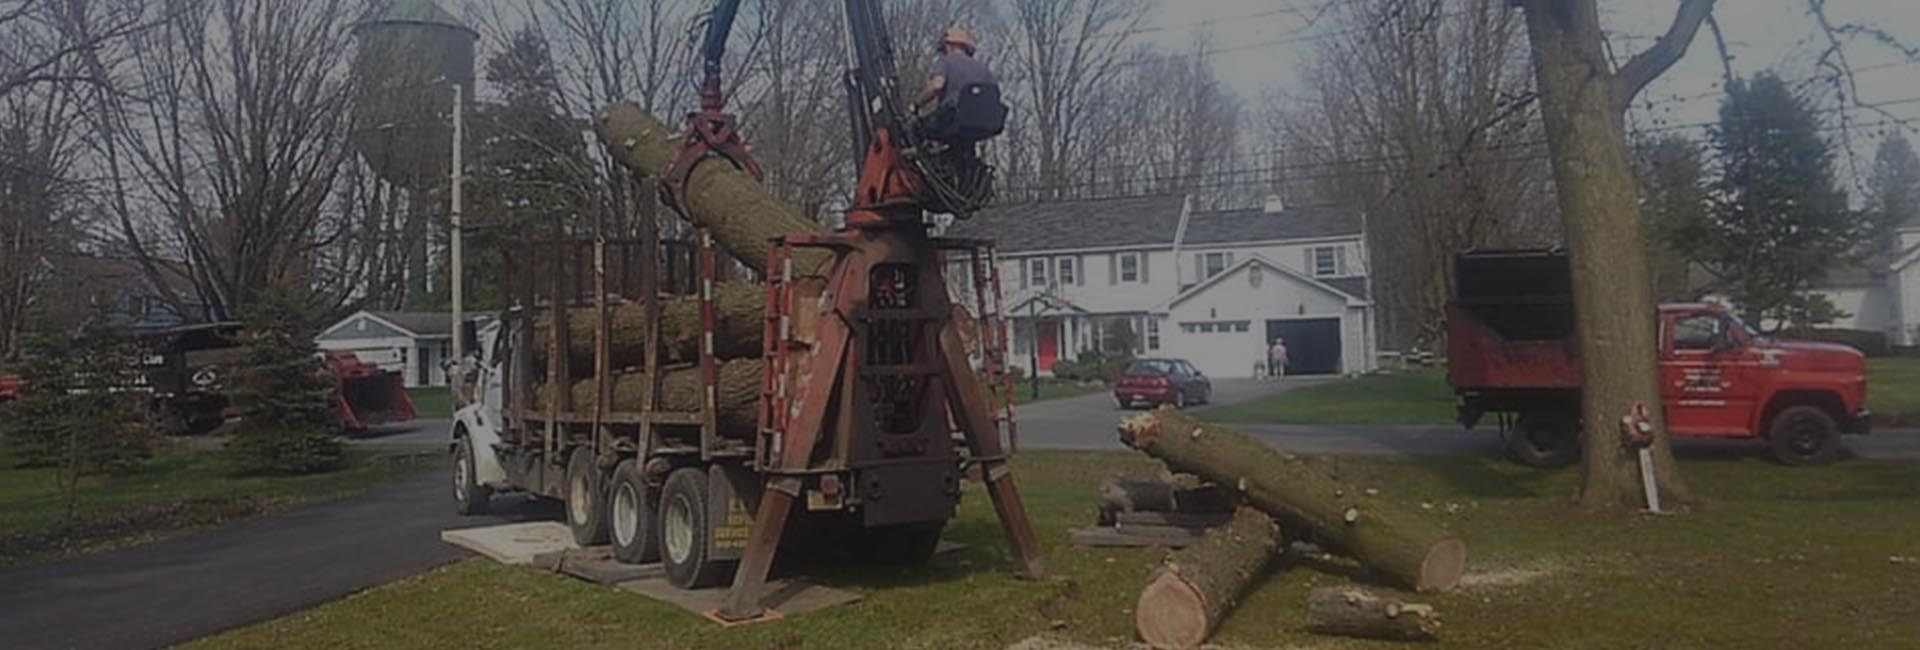 Man placing logs into Greater Heights Tree Care Equipment